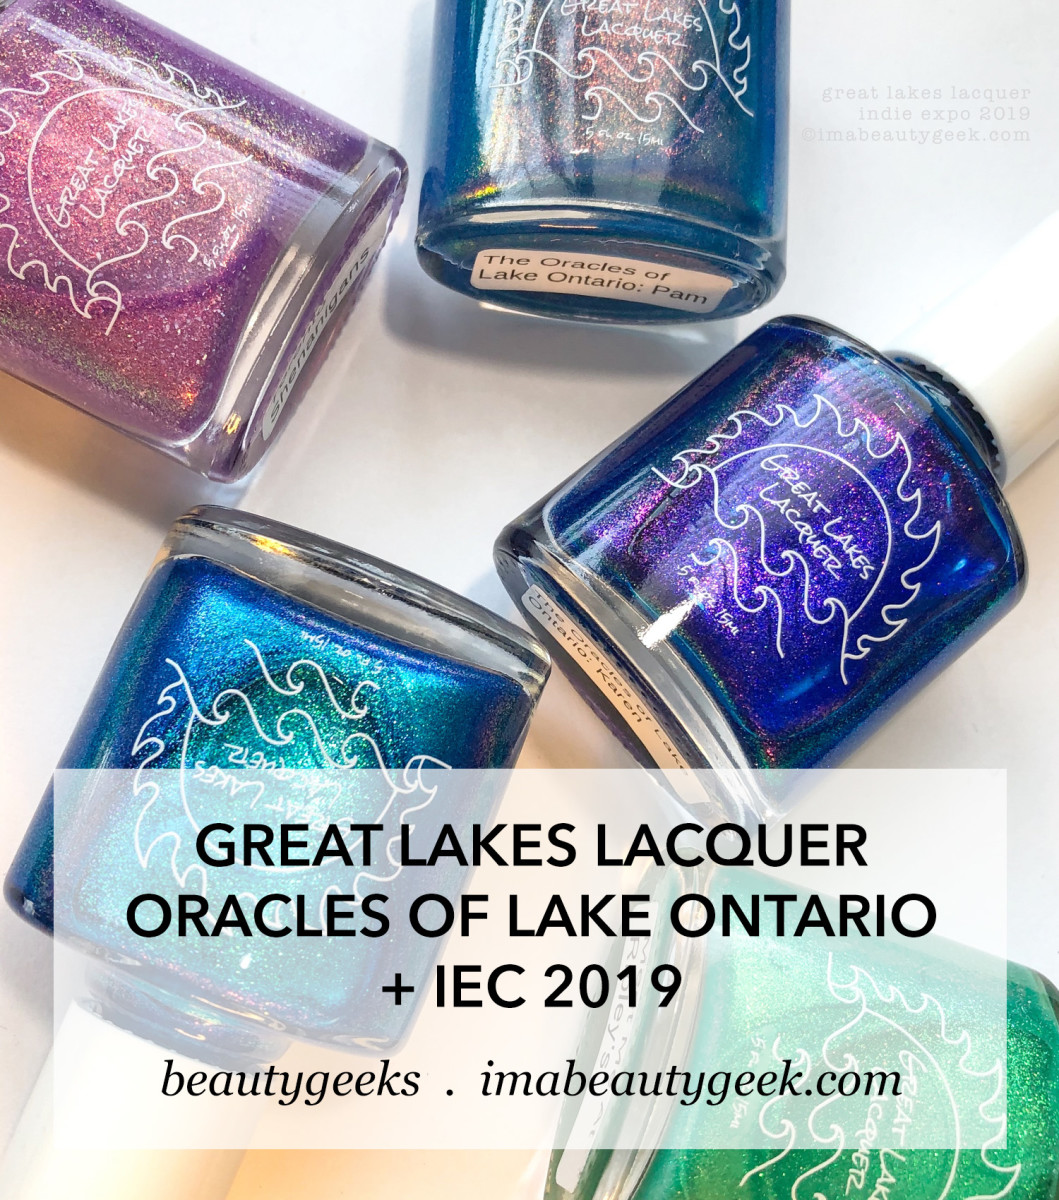 Great Lakes Lacquer Oracles of Lake Ontario Indie Expo Canada 2019